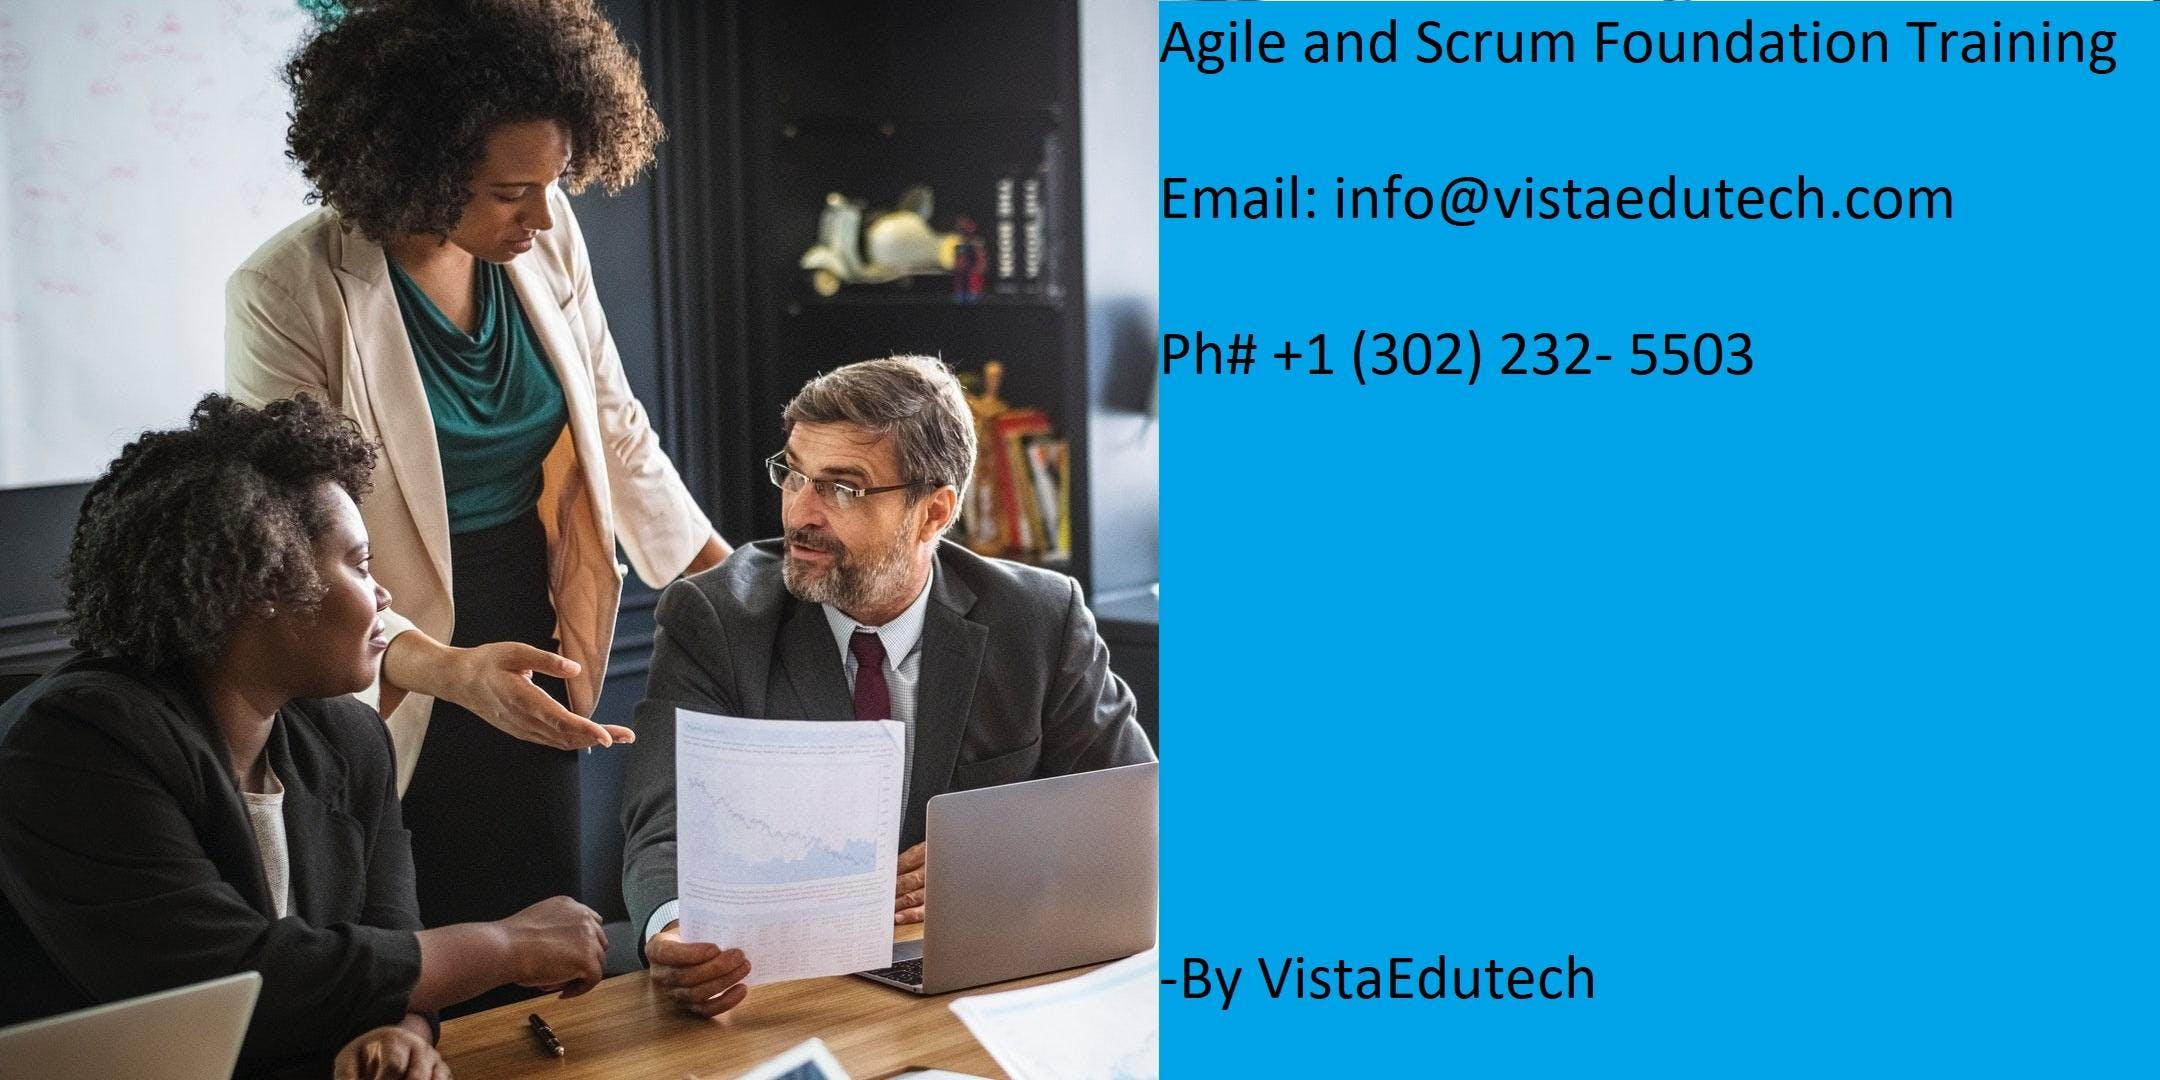 Agile & Scrum Classroom Training in Anchorage, AK